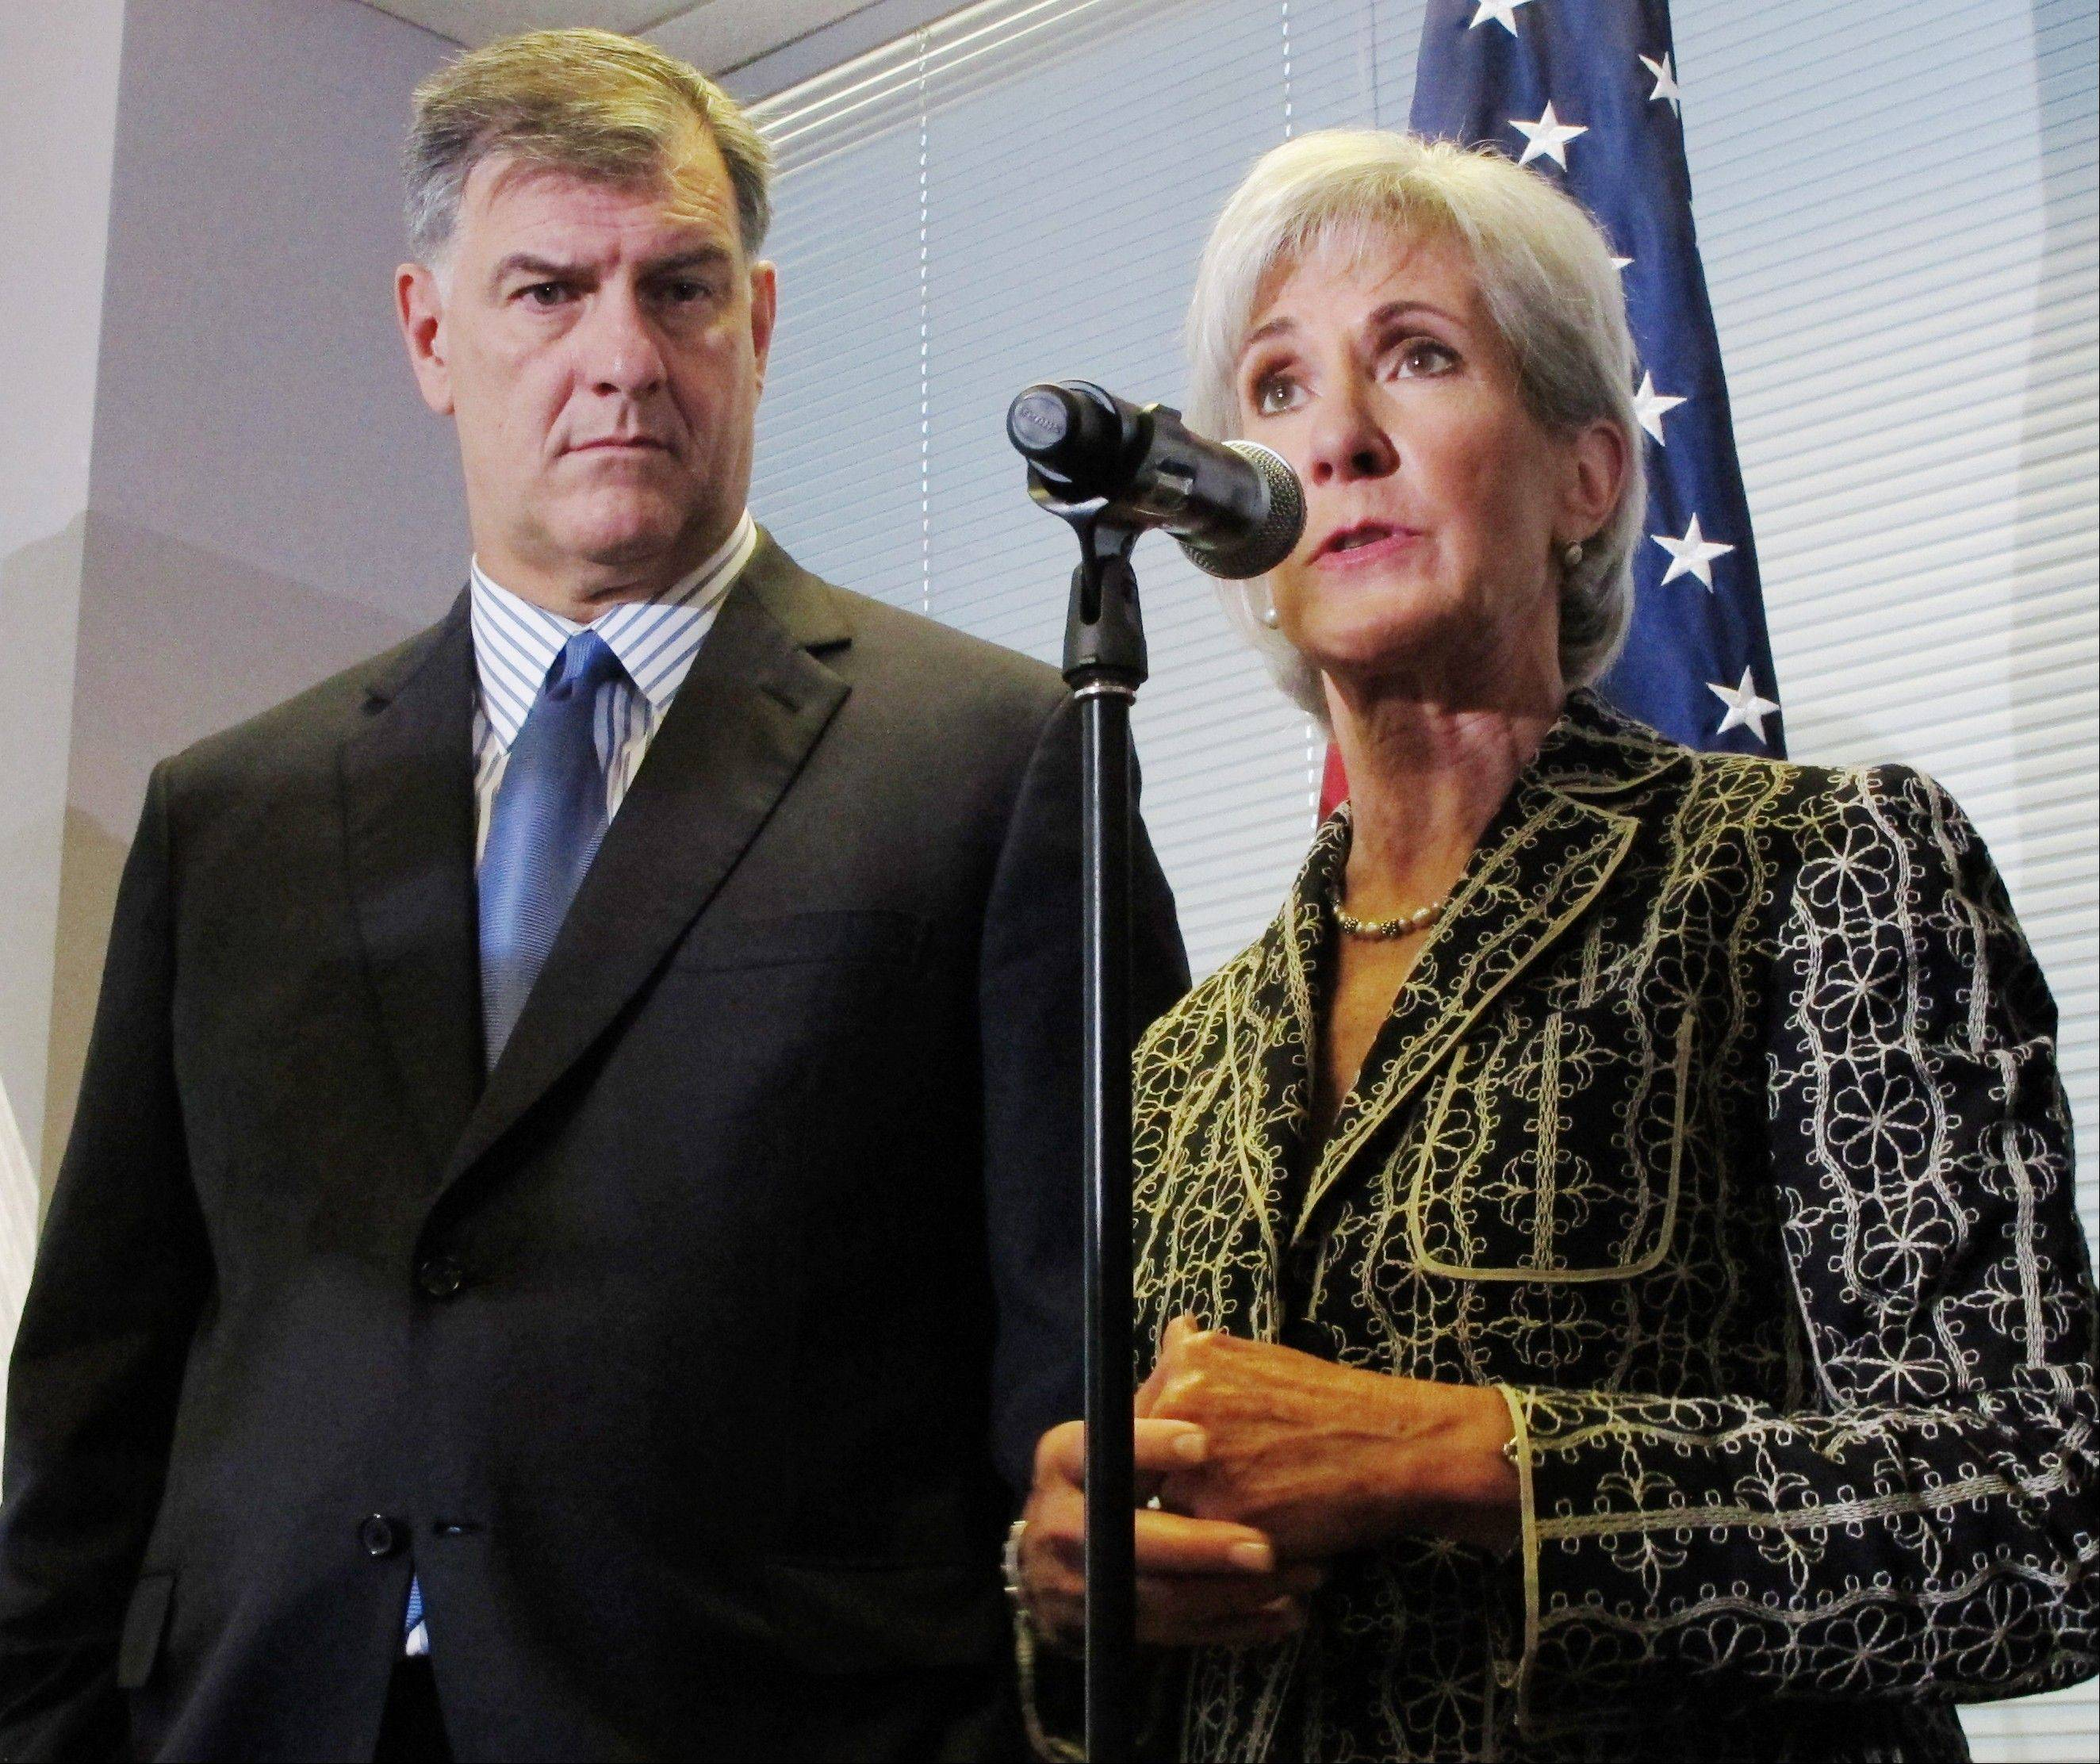 U.S. Health and Human Services Secretary Kathleen Sebelius, right, with Dallas Mayor Mike Rawlings, discusses the implementation of the federal health care overhaul in Dallas on Thursday. Sebelius and Rawlings discussed the impending overhaul�s importance to North Texas.